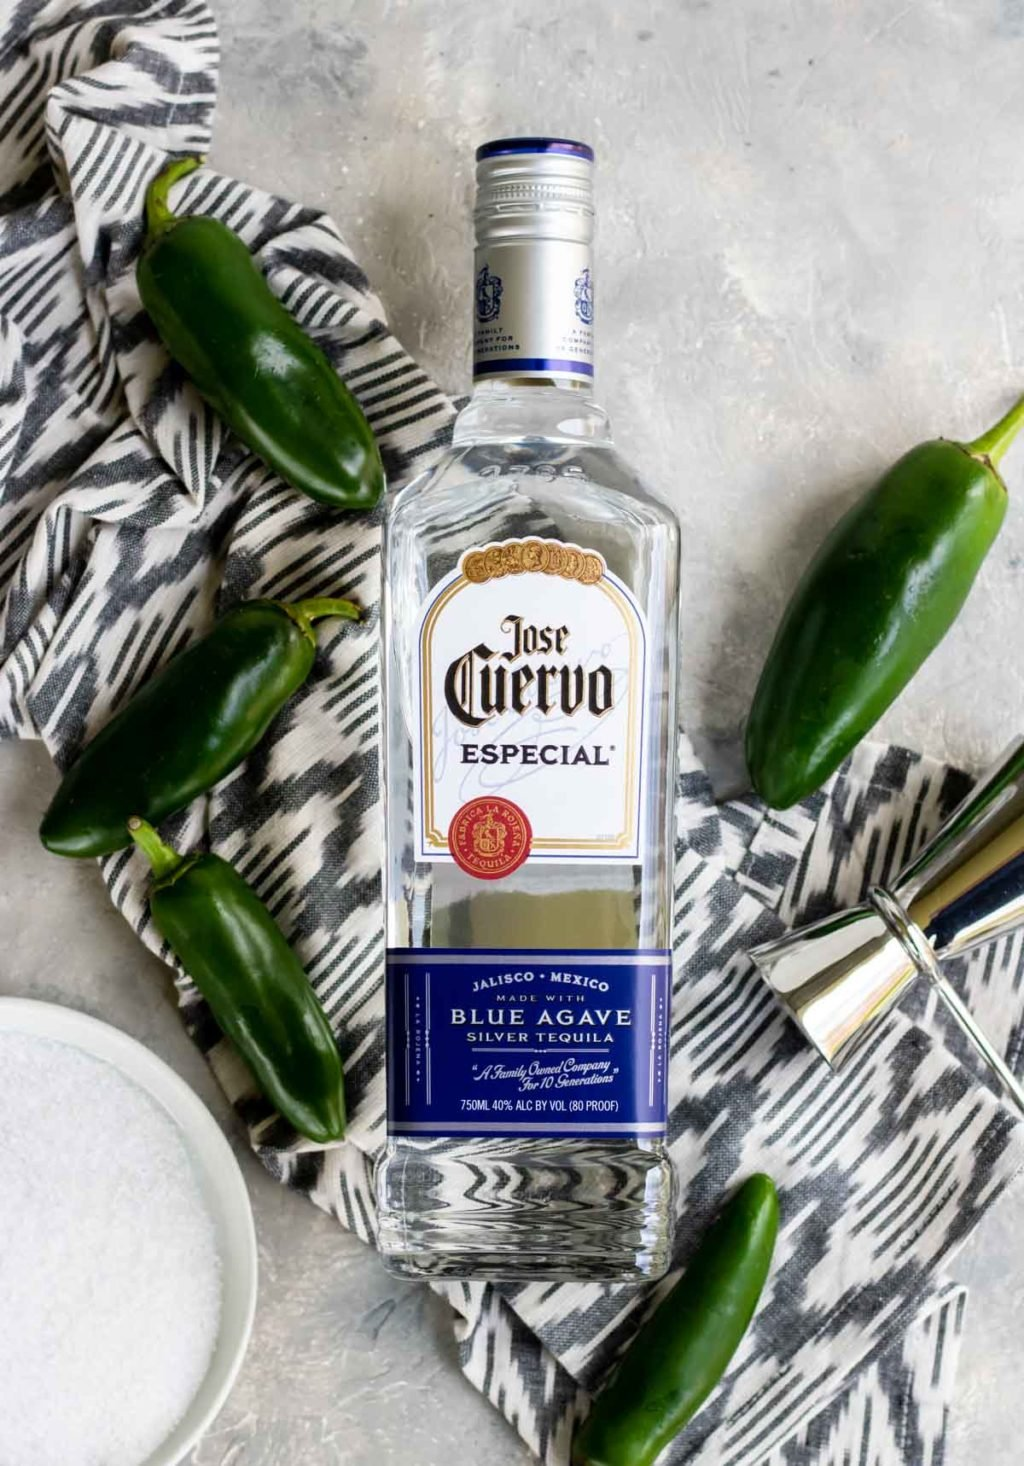 A bottle of Jose Cuervo Especial Blue Agave Silver tequila